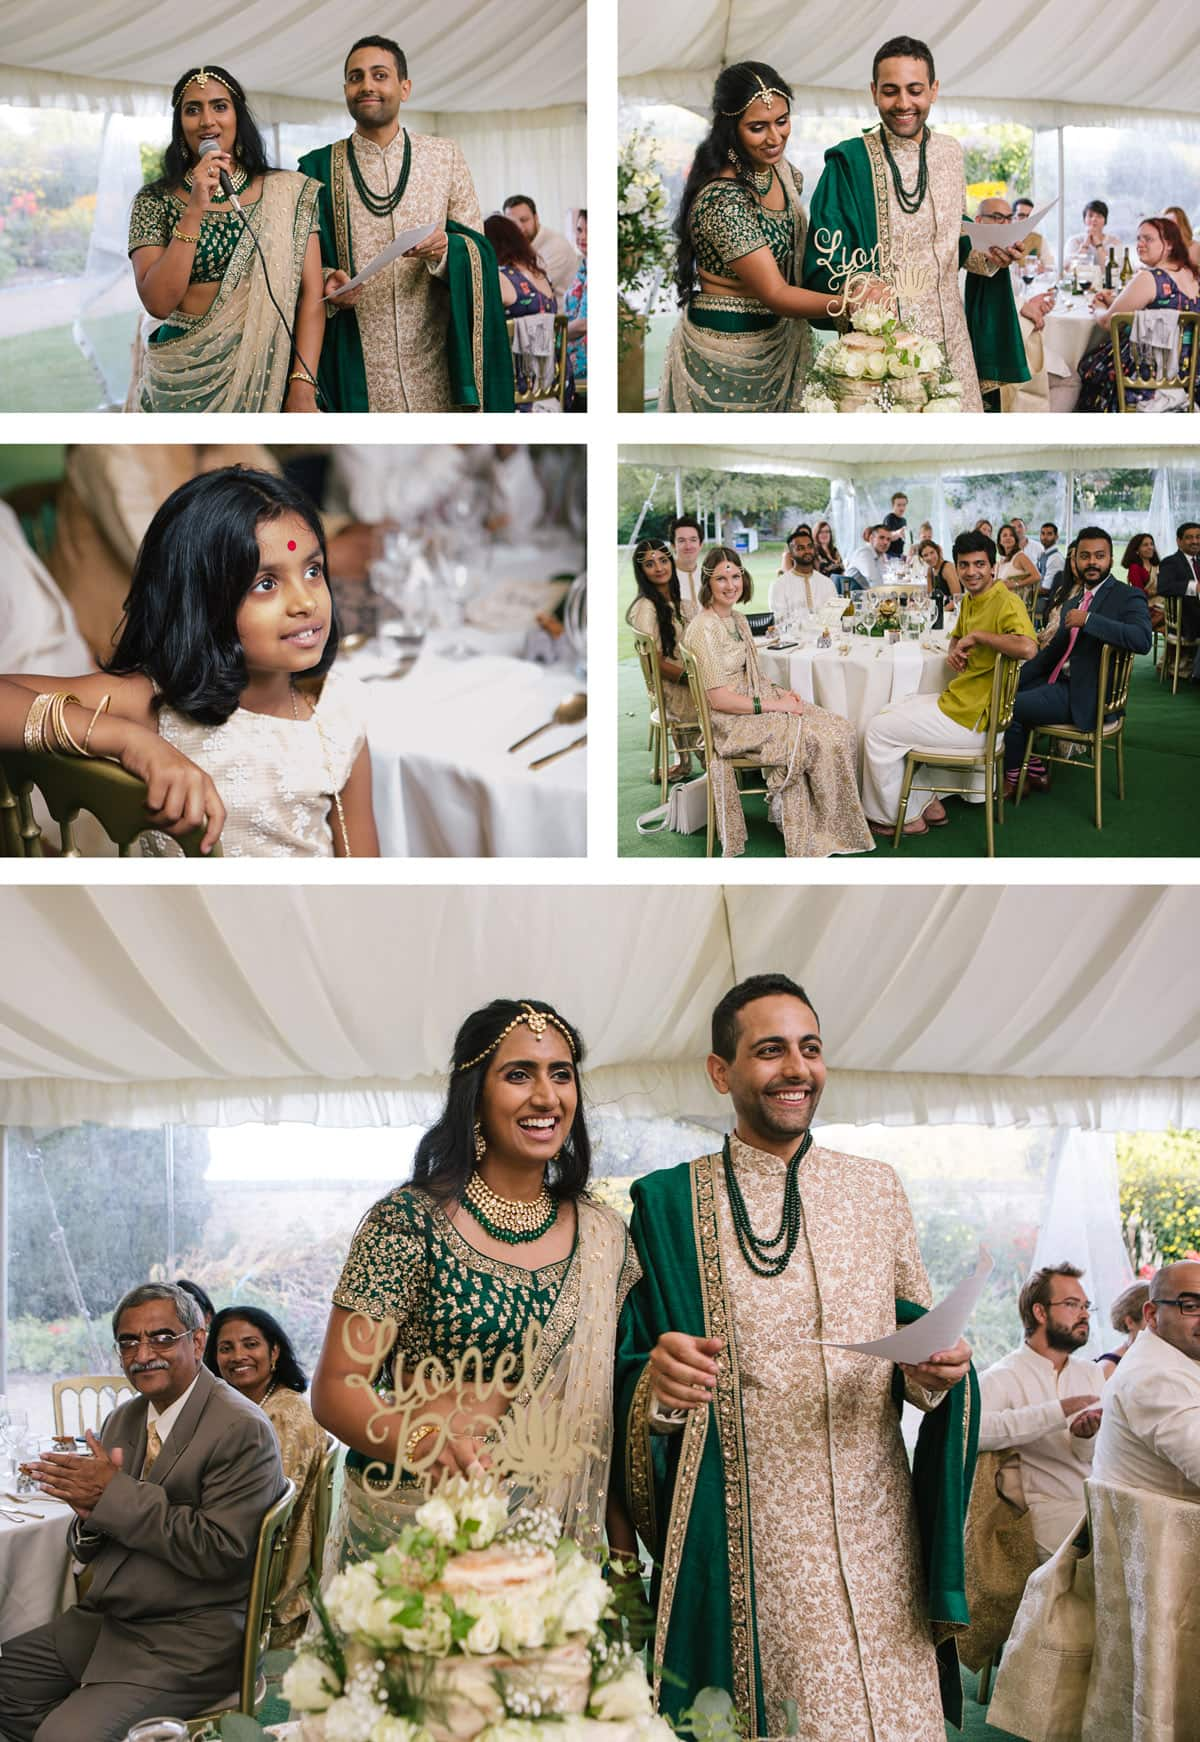 Collage of images of speeches and cake cutting at Indian wedding at Christchurch college